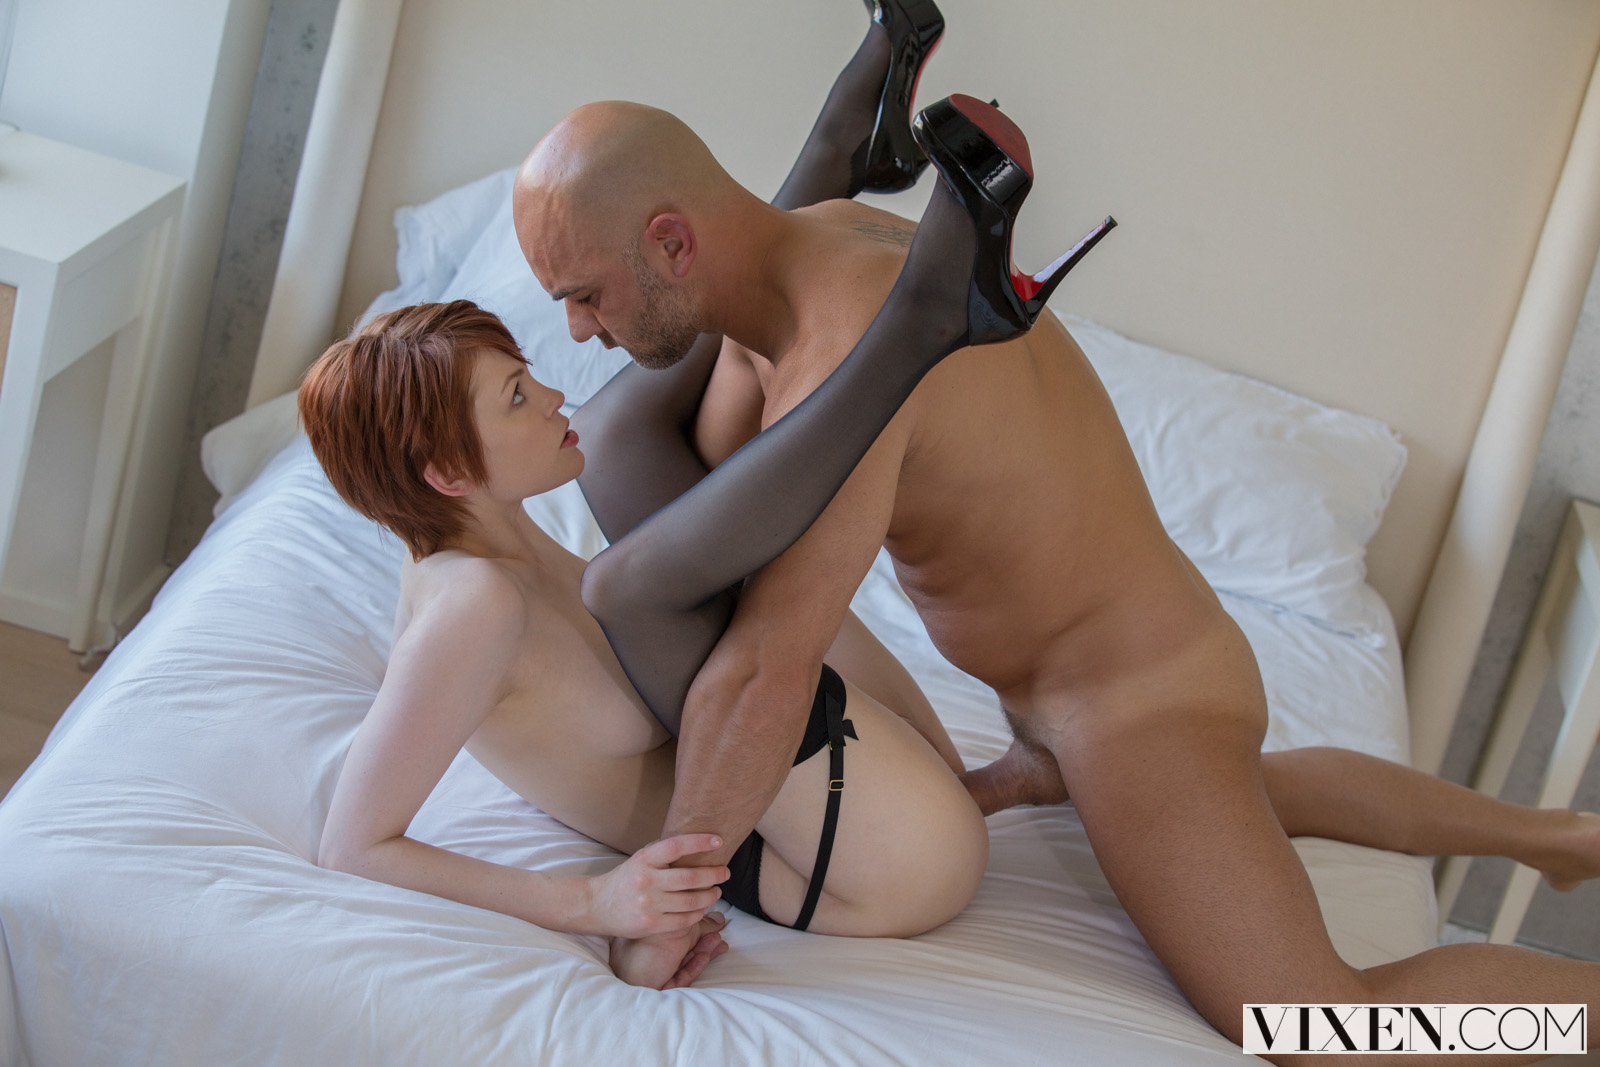 Christian Porn Tits - Vixen Bree Daniels in The Girlfriend Experience Part 1 with Christian Clay  11